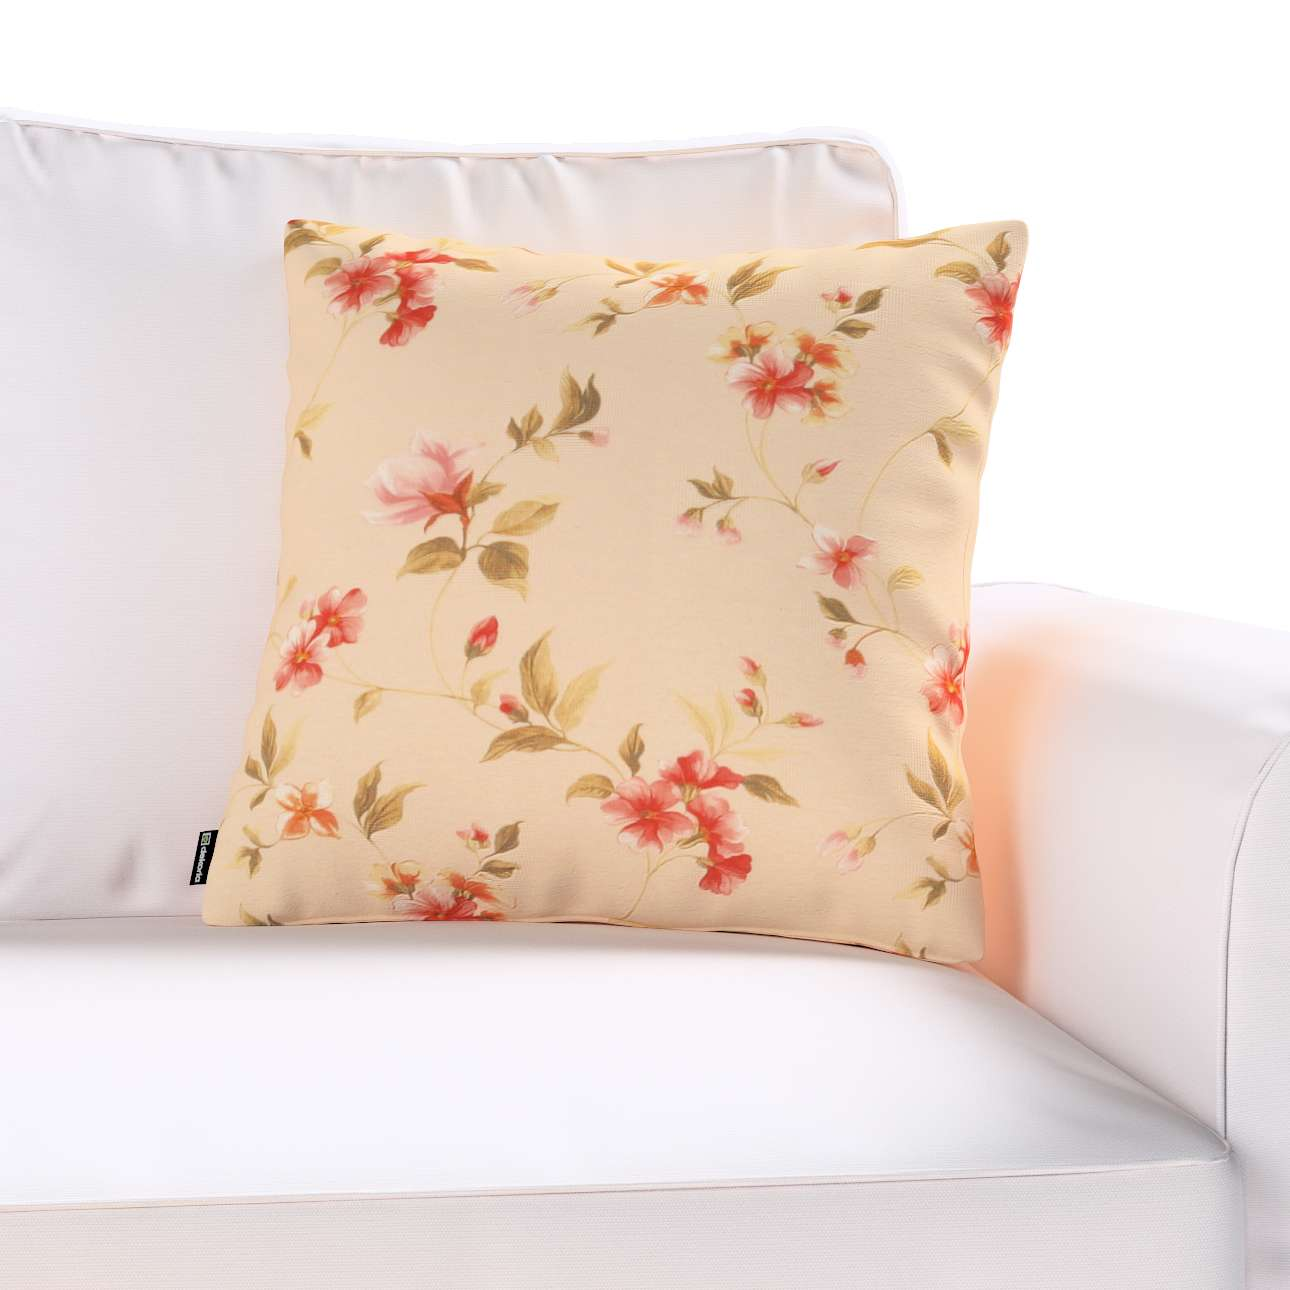 Kinga cushion cover 43 x 43 cm (17 x 17 inch) in collection Londres, fabric: 124-05